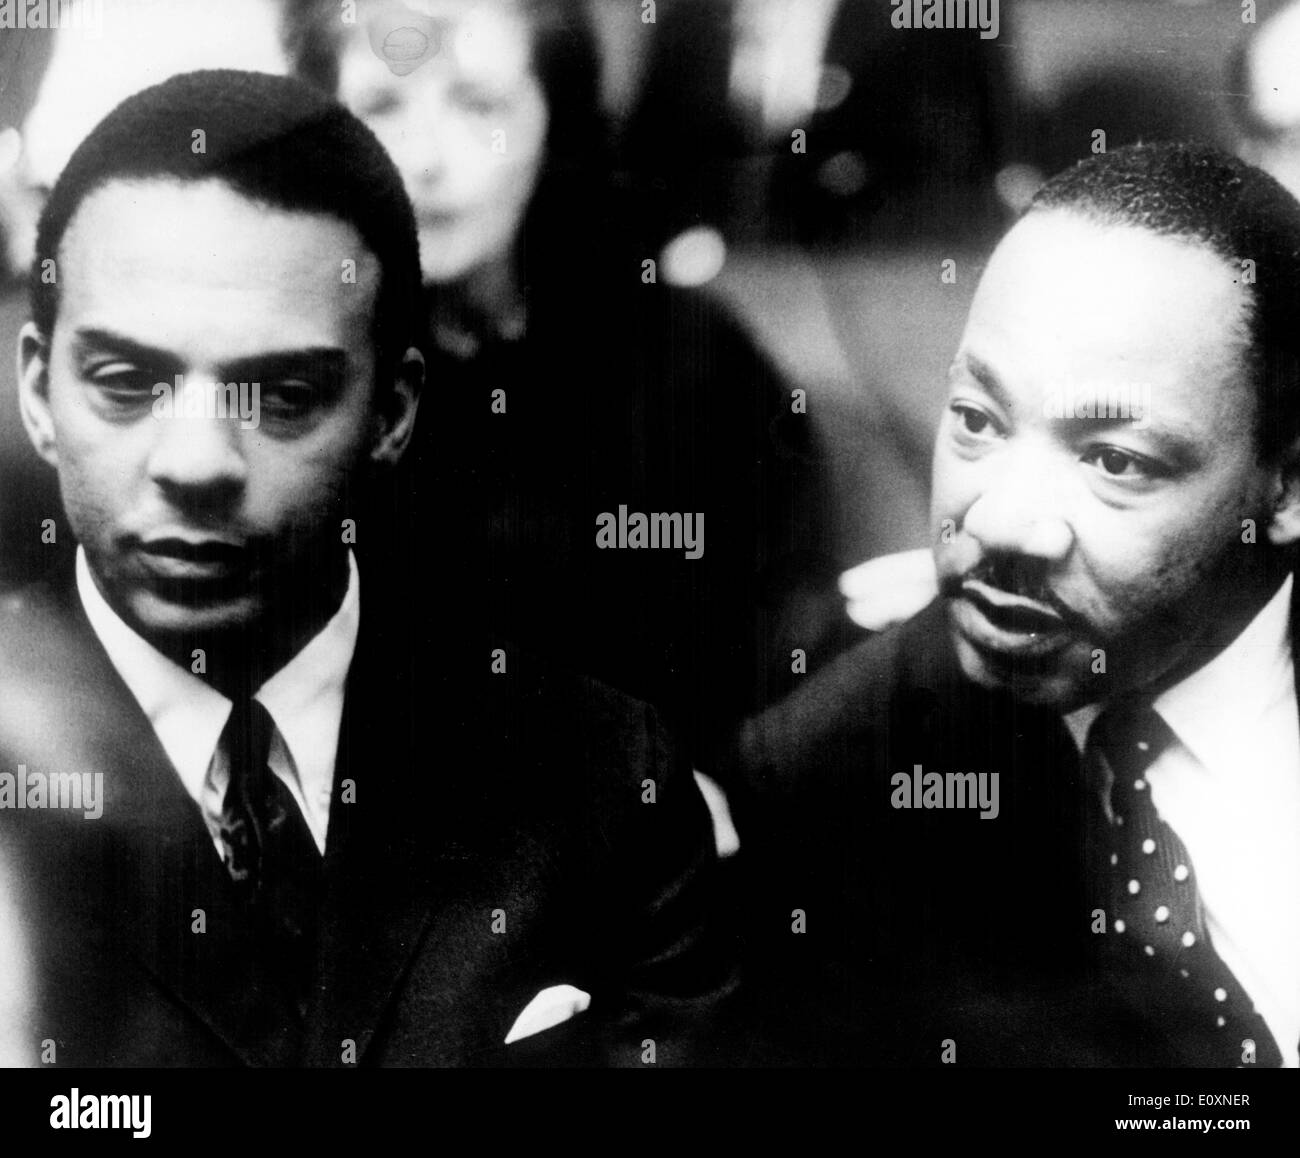 Martin Luther King Jr. at the 'Pacem in Terris' Peace Conference - Stock Image